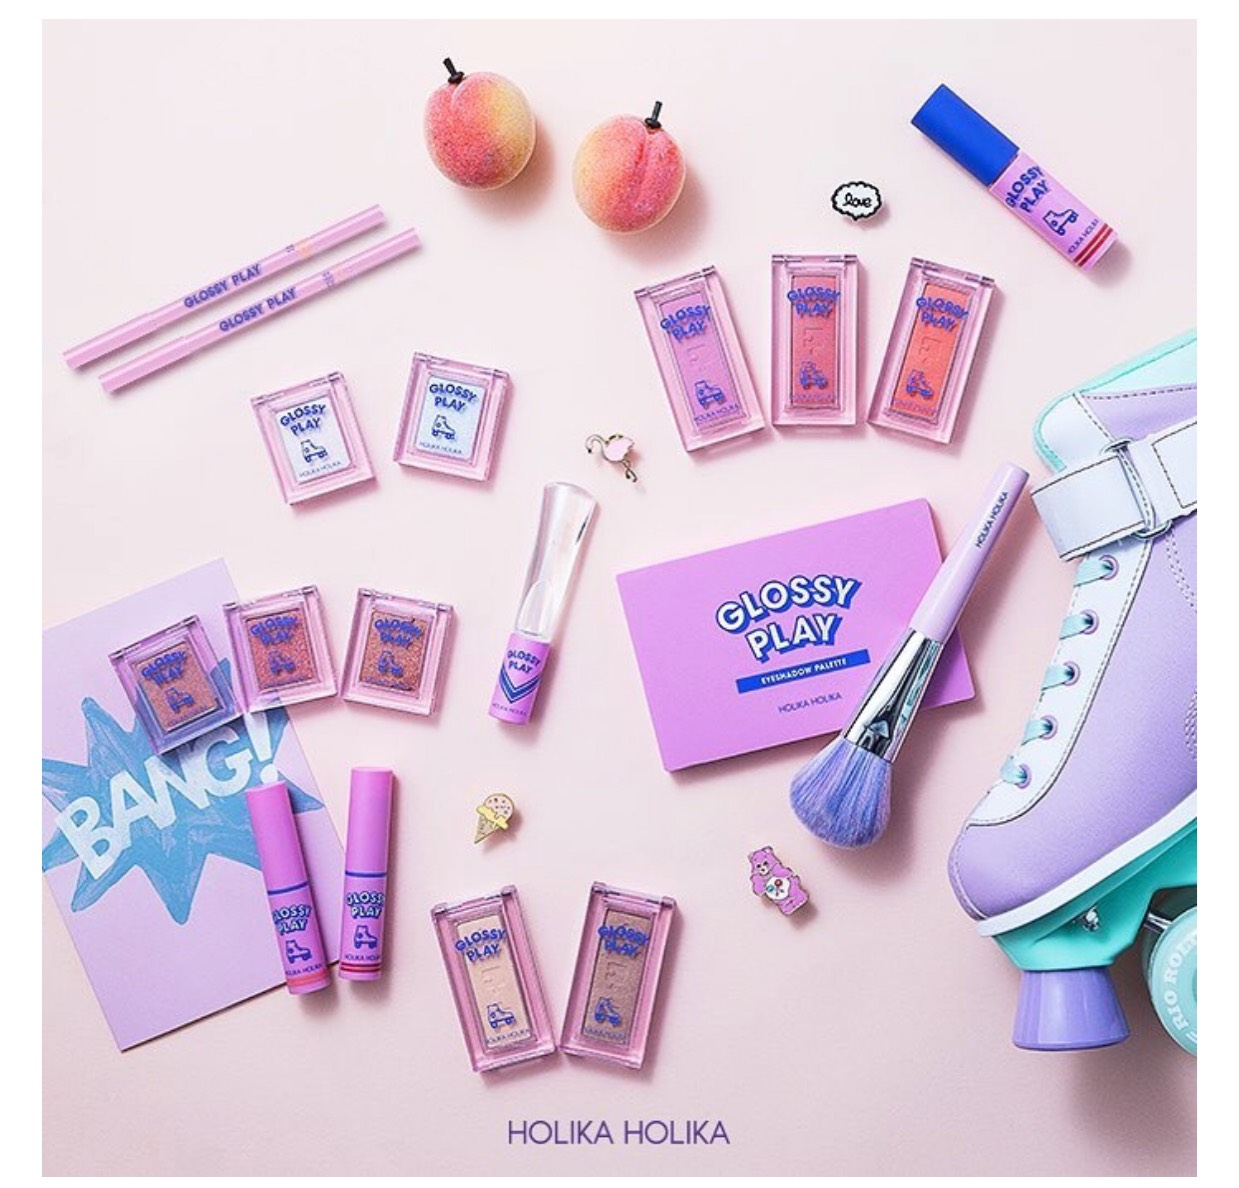 【新作!韓国コスメ】HOLIKA HOLIKA♡GLOSSY PLAY